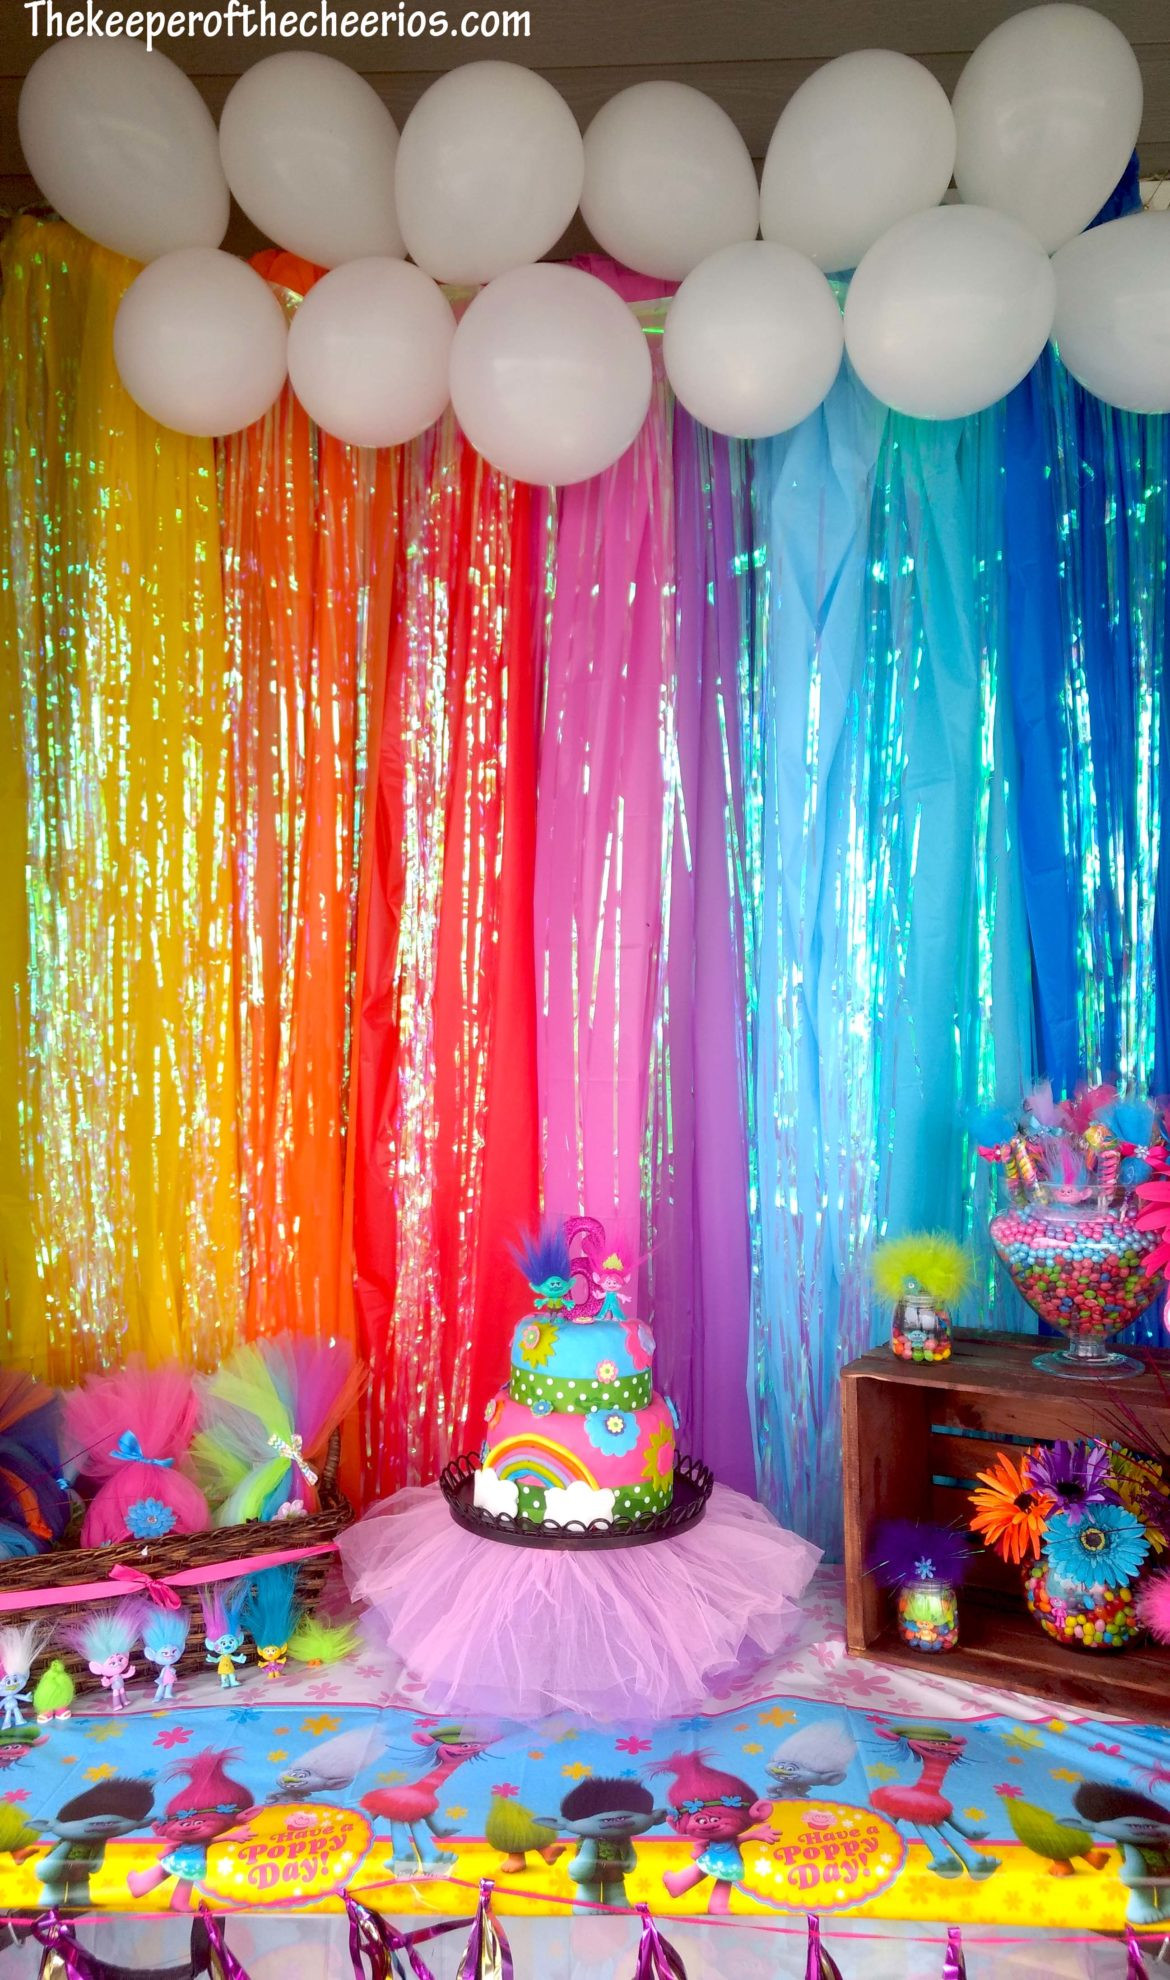 Best ideas about Troll Birthday Party . Save or Pin Trolls Birthday Party The Keeper of the Cheerios Now.